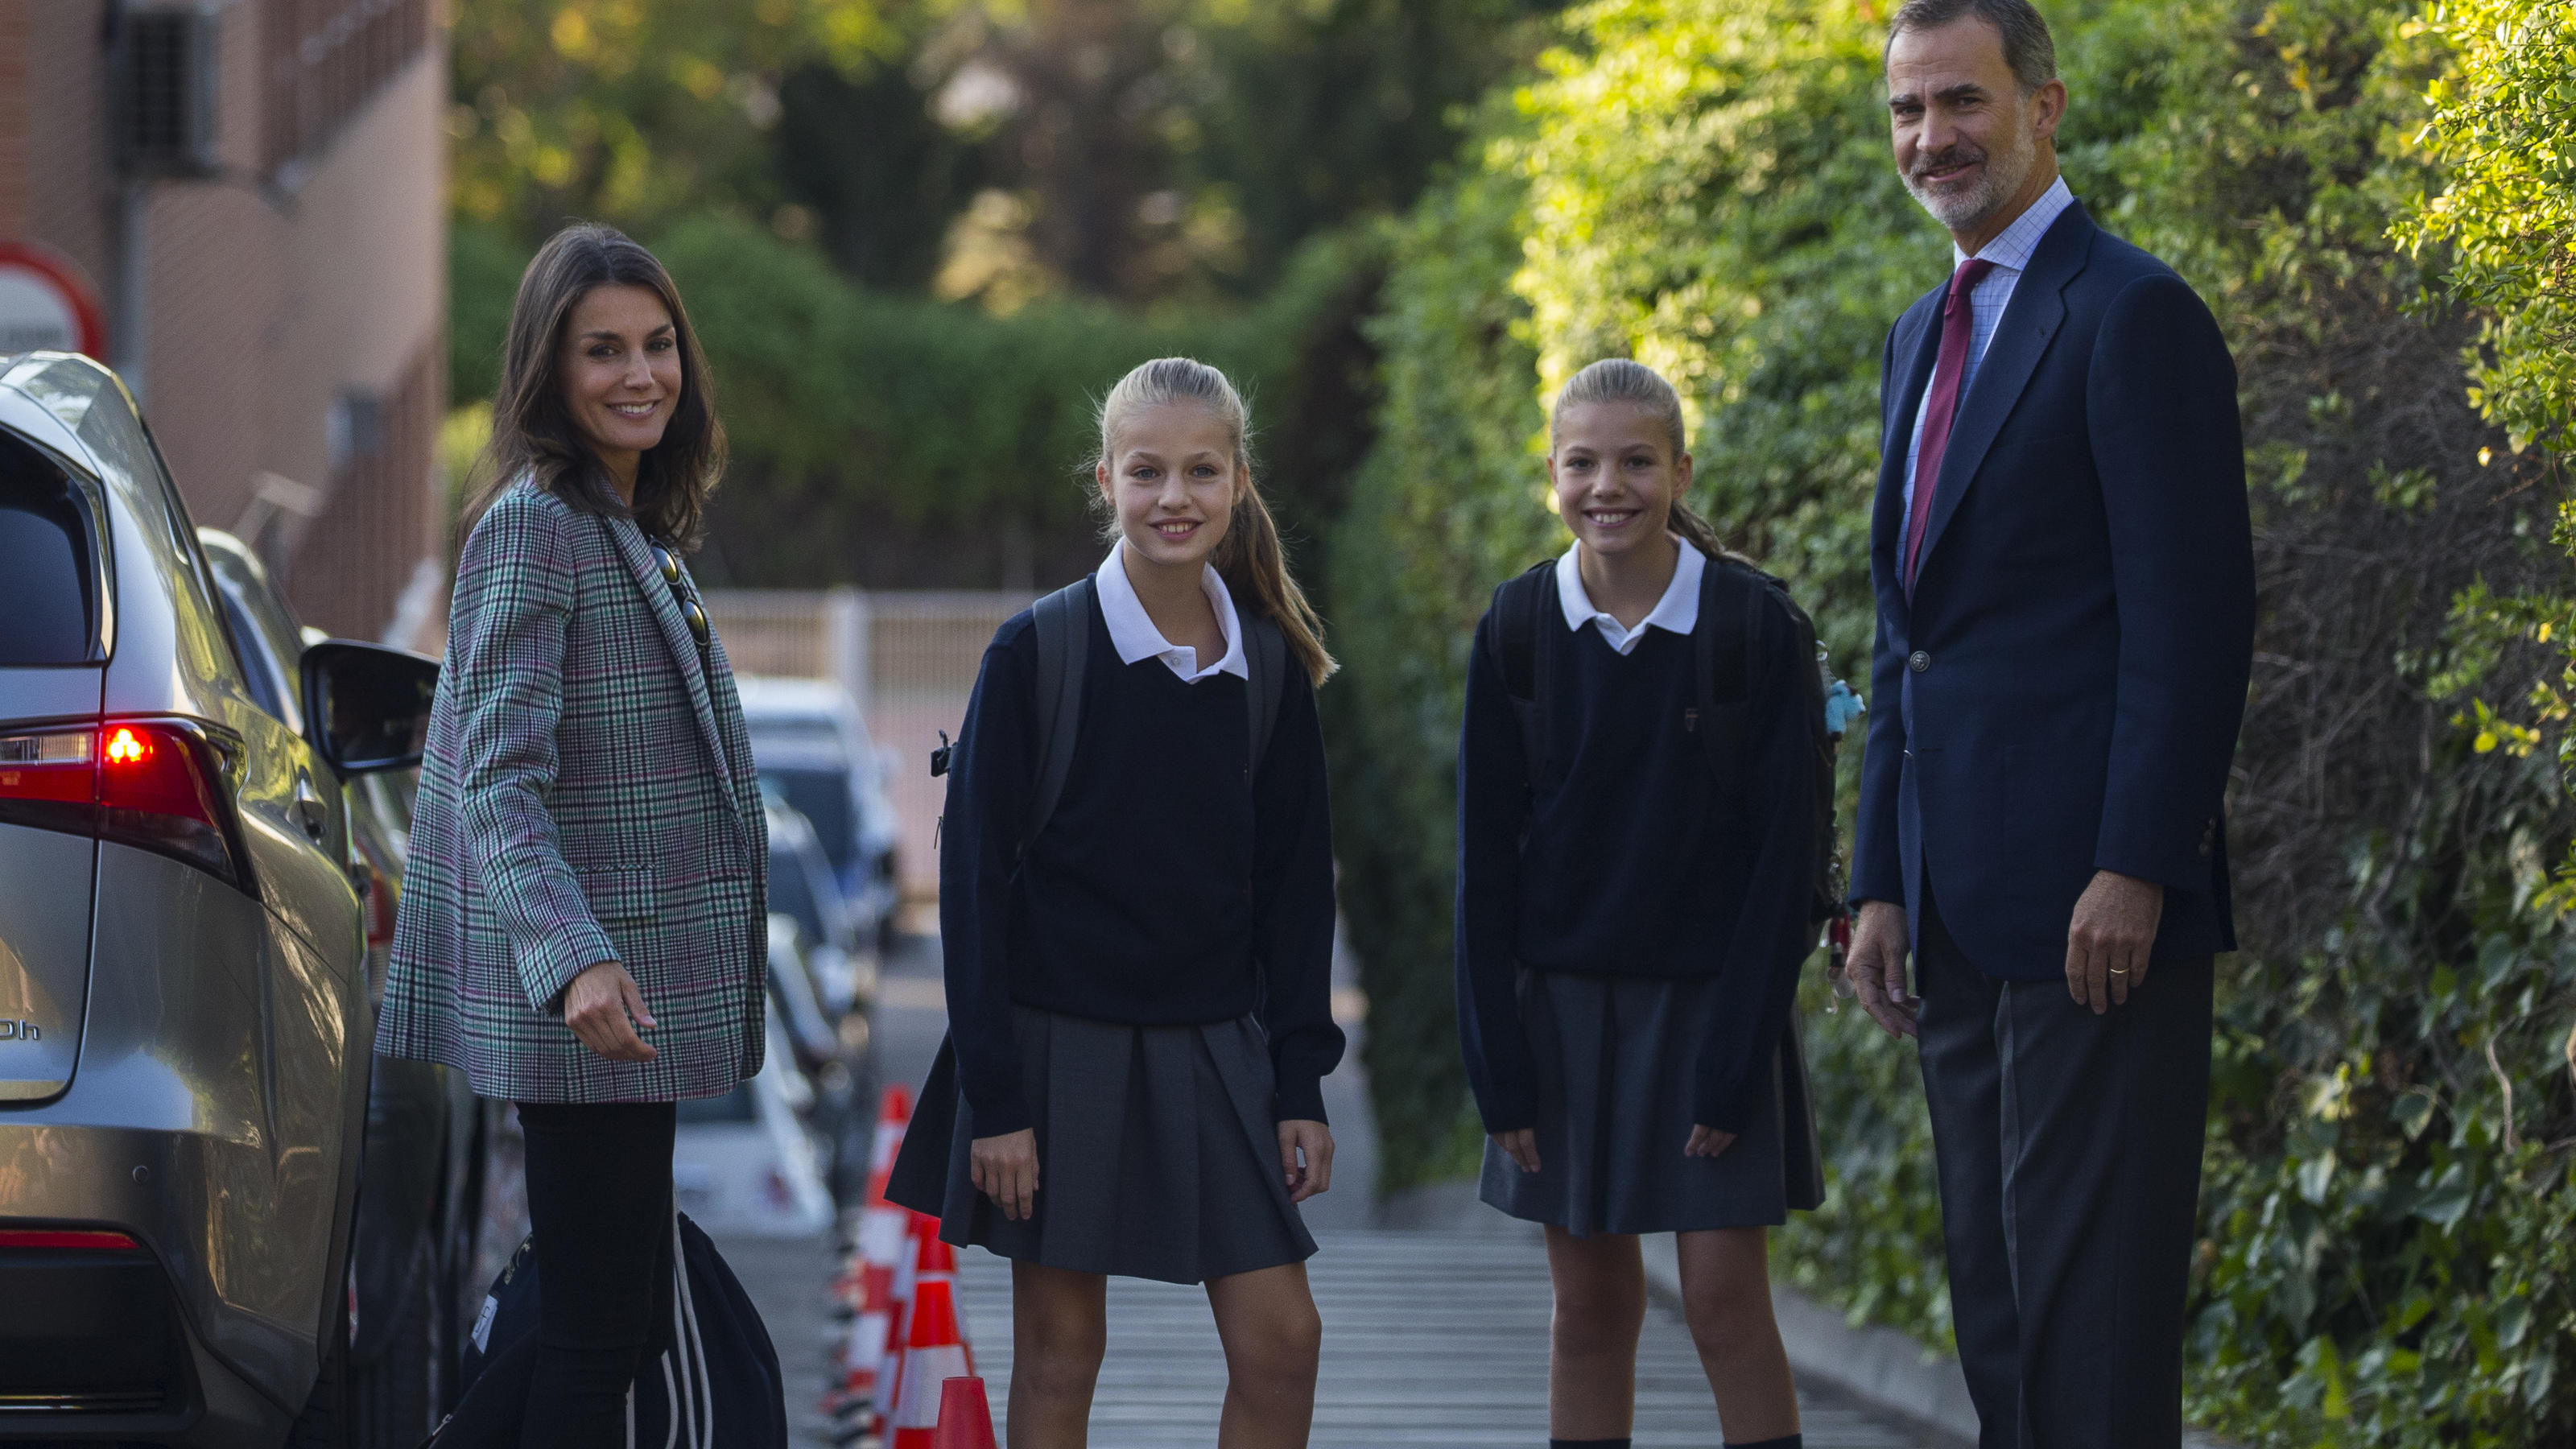 The royals arrived driving their own car to the Santa María de los Rosales School, where they study in Madrid. Queen Letizia wore a casual outfit with sports shoes. The Kings and their daughters pose for the photographers at the doors of the school